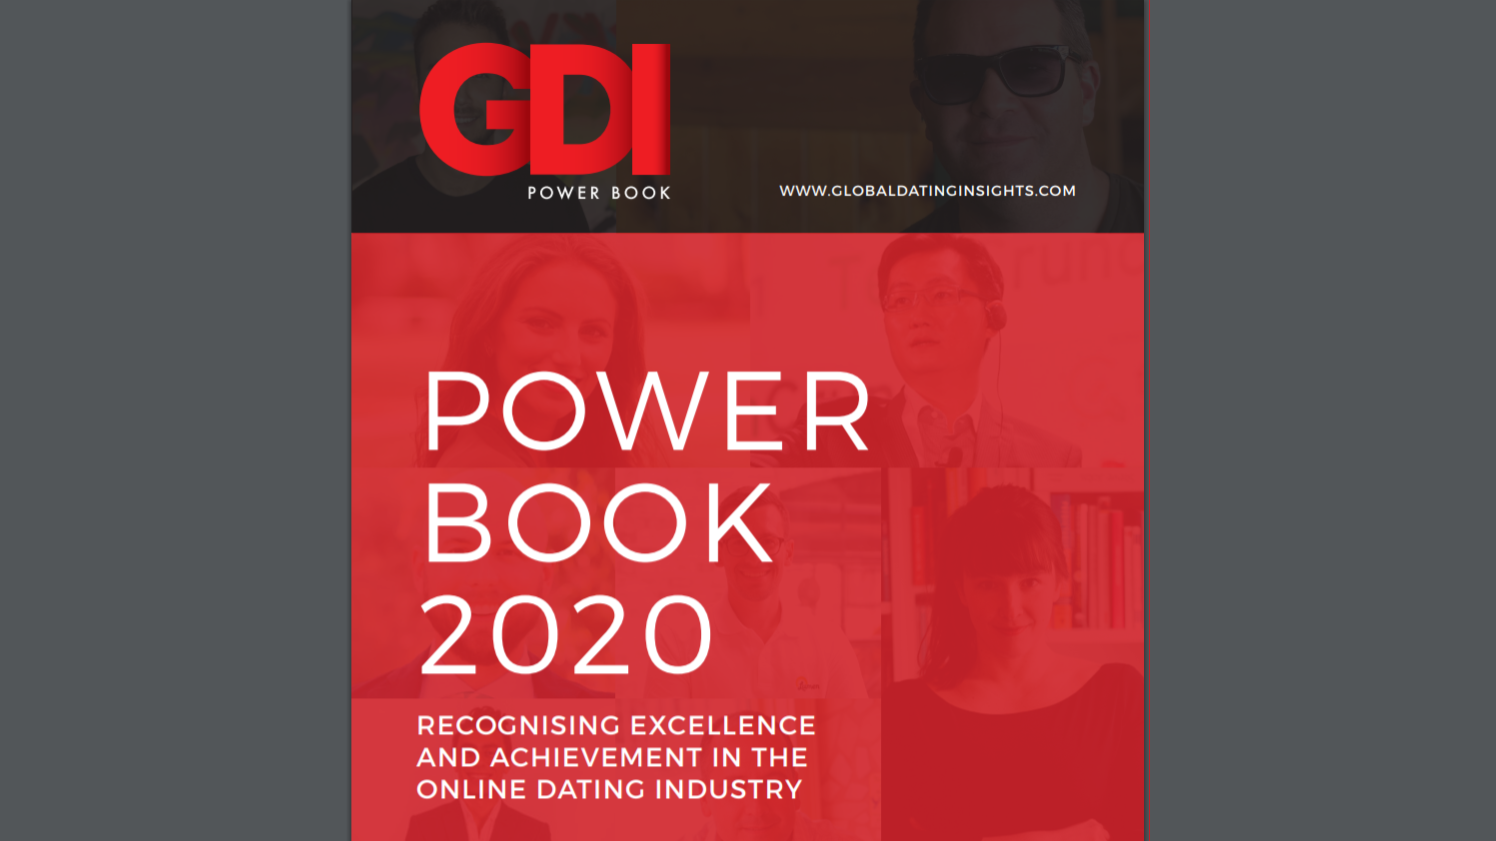 The GDI Power Book 2020!